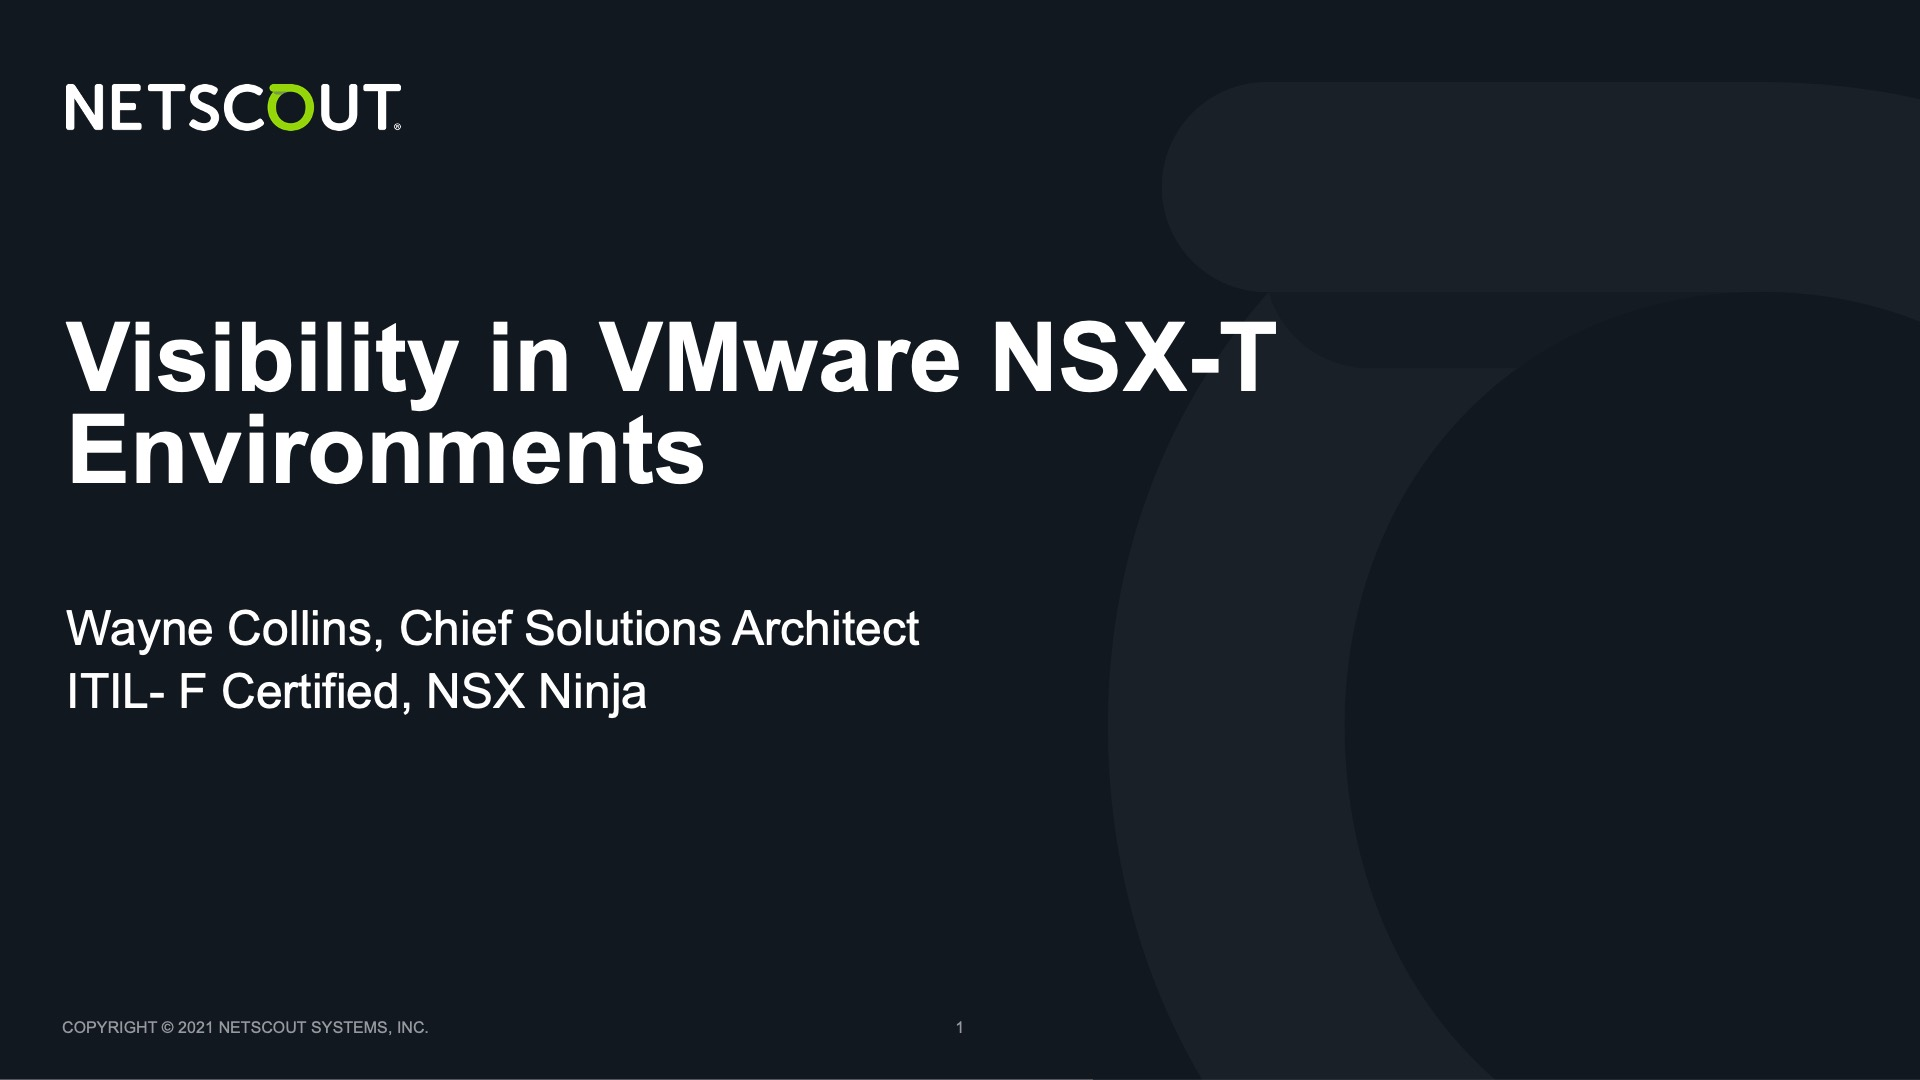 Visibility in VMware NSX-T Environments